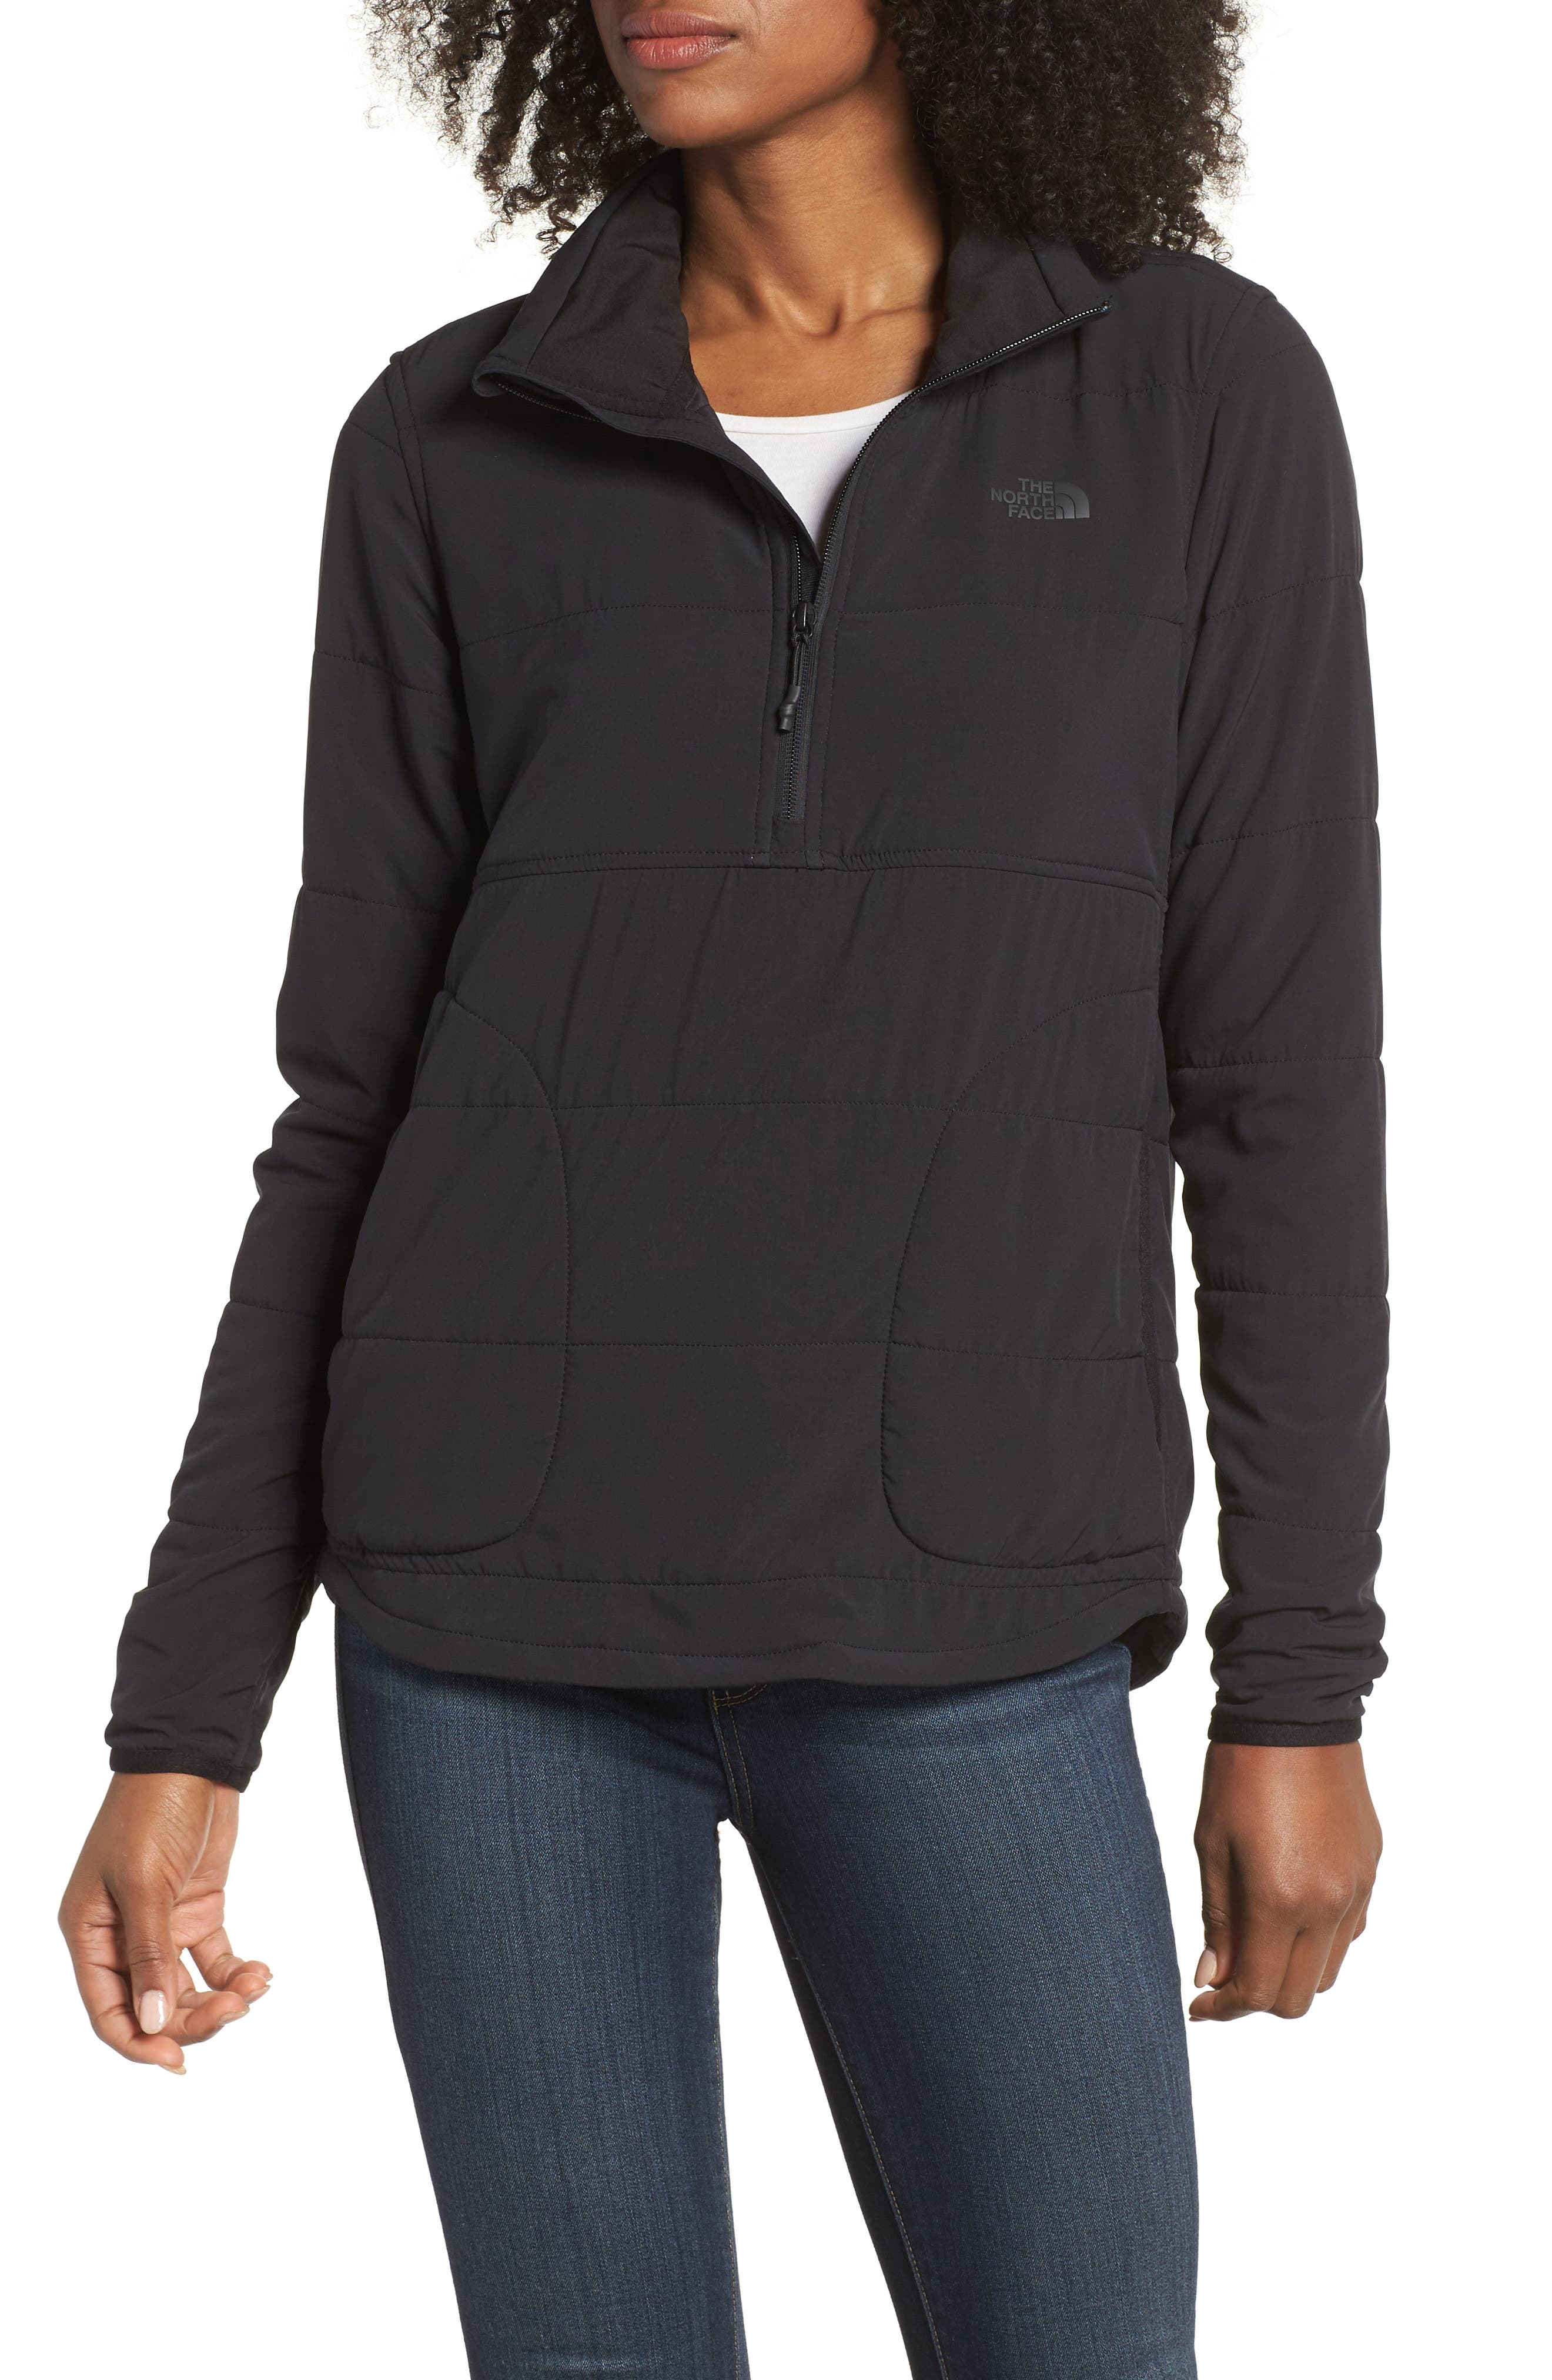 Mountain Sweatshirt Quarter Zip Pullover,                         Main,                         color,